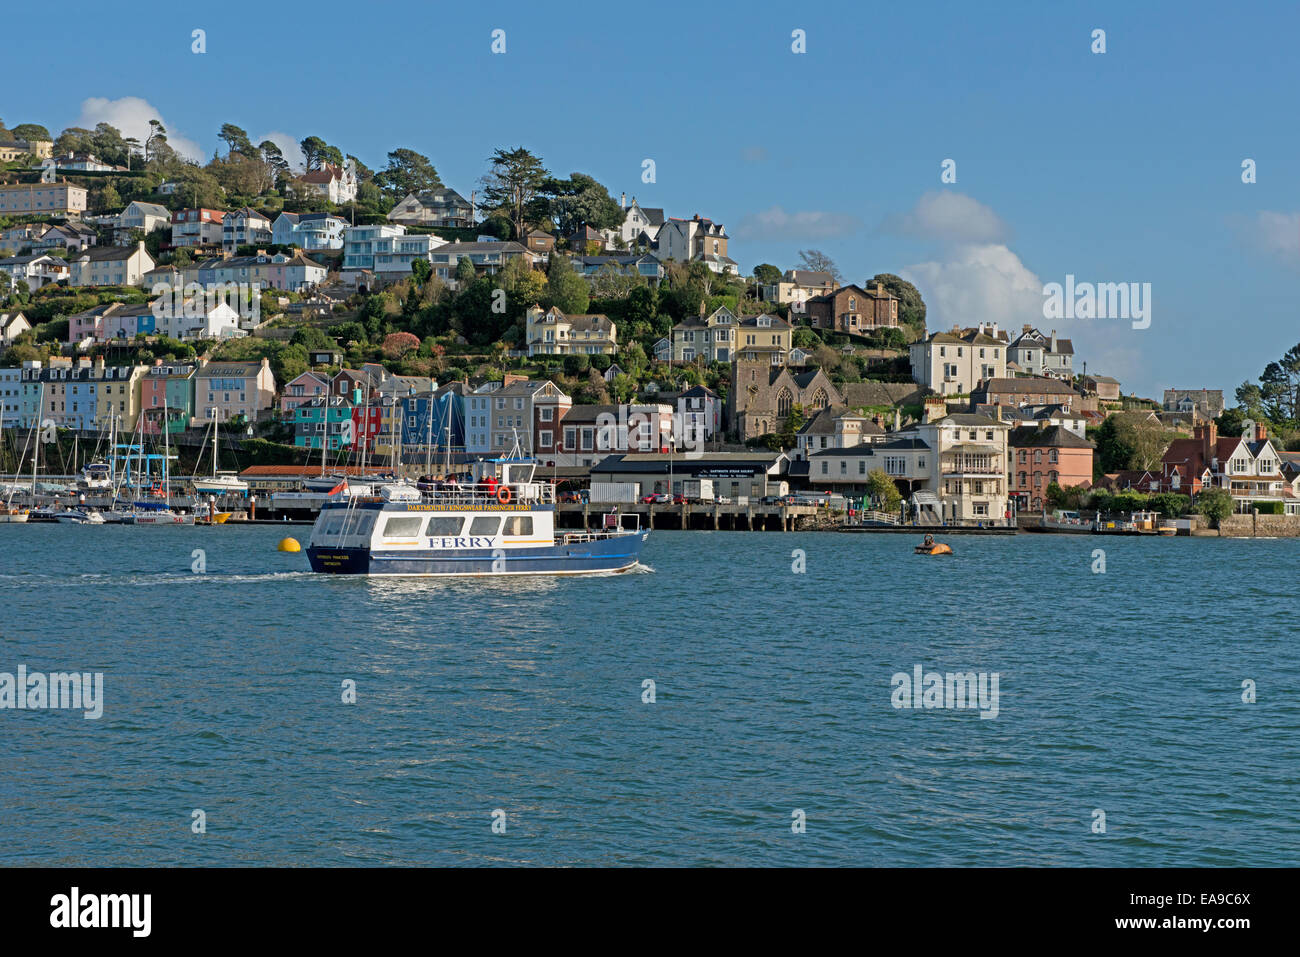 Dartmouth/Kingwear Ferry cruising along the River Dart  with a landscape view of  Kingswear in the background, South Stock Photo